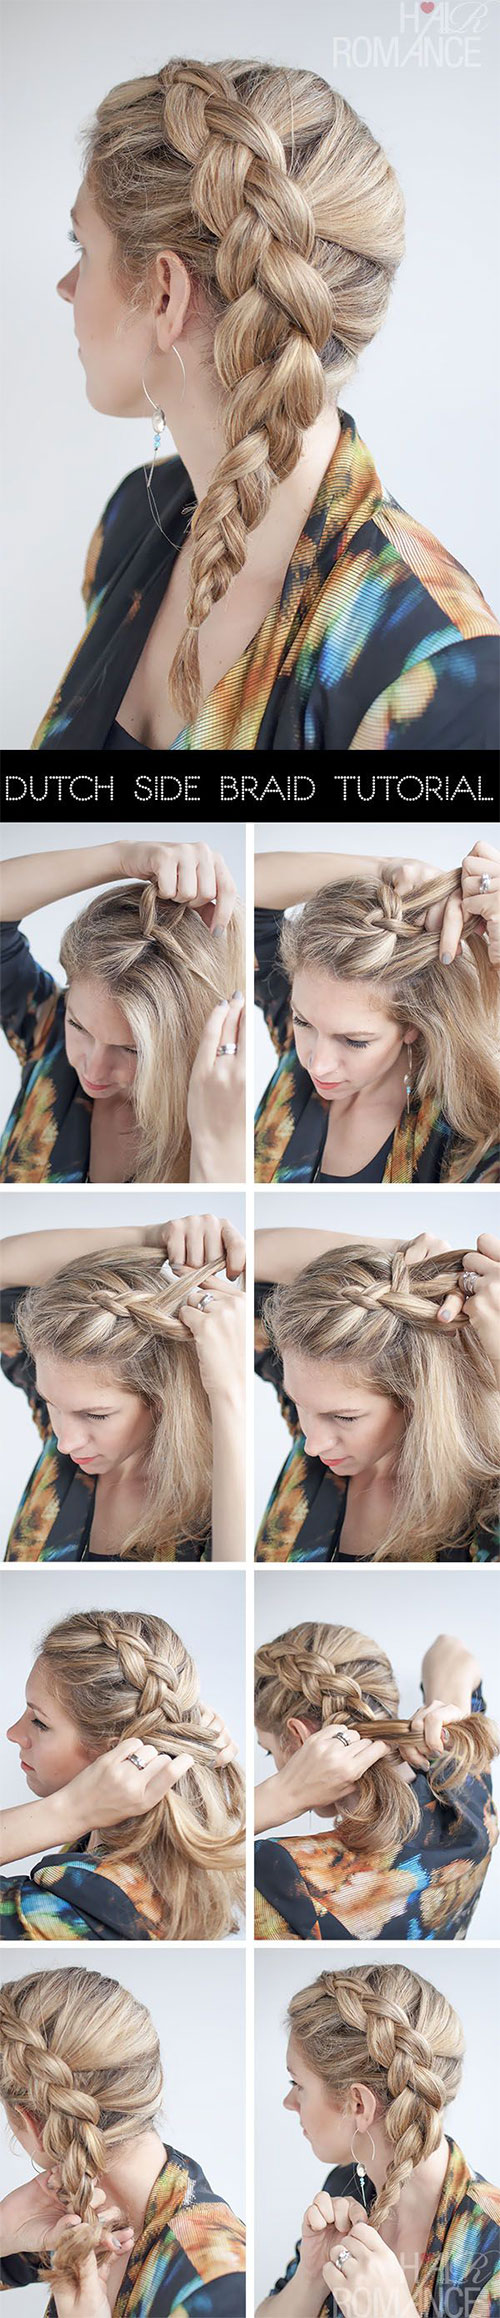 20-Easy-Step-By-Step-Summer-Braids-Style-Tutorials-For-Beginners-2015-7